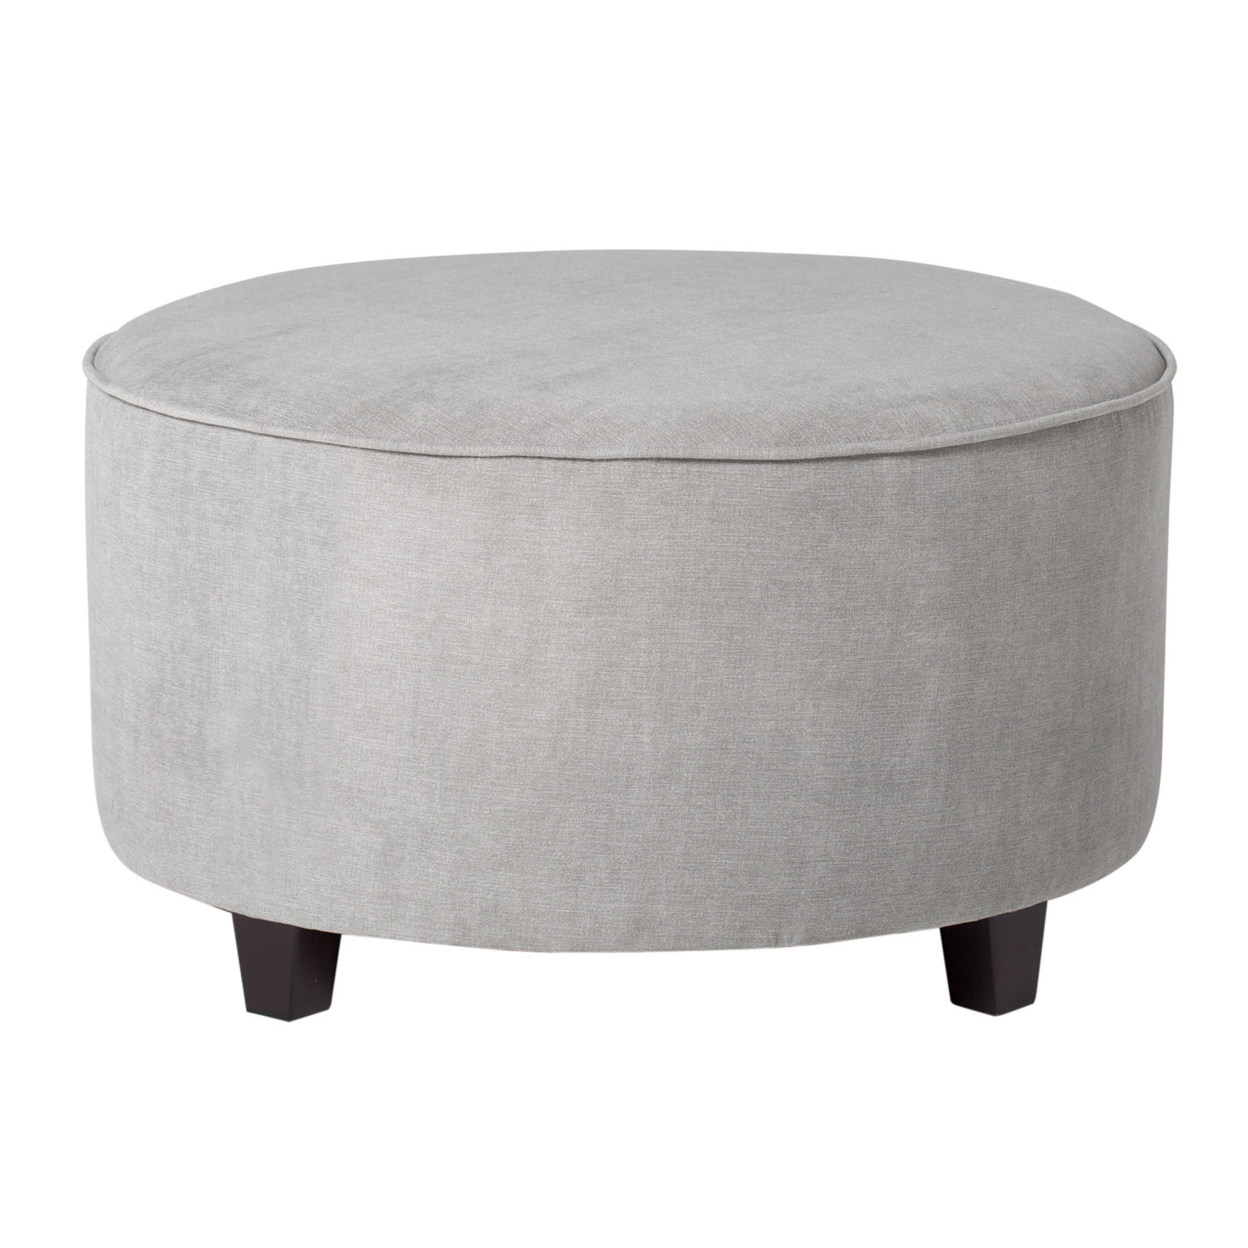 Studio Designs Home Office Moon Gate Ottoman – Dove